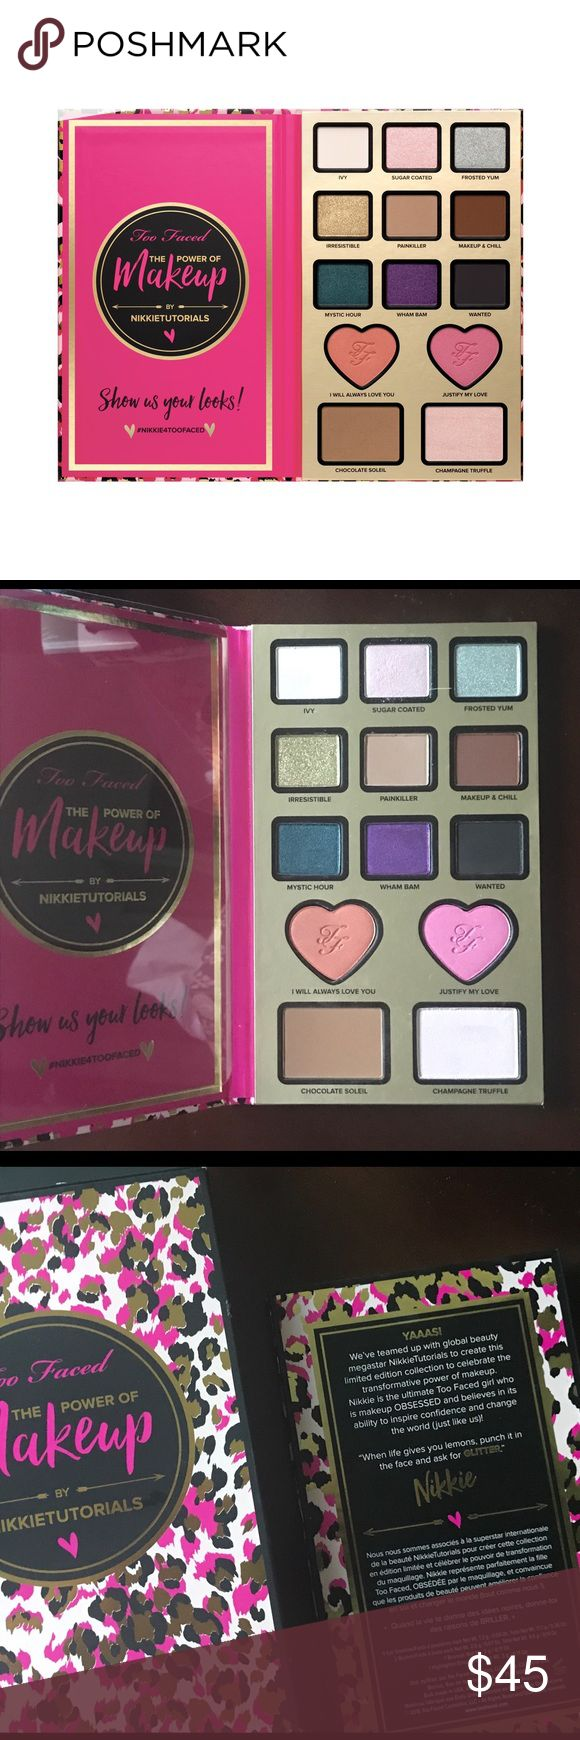 Too Faced X Nikkie Tutorials The Power of Makeup BRAND NEW! BNWT! Too Faced X Nikkie Tutorials The Power of Makeup Palette. It features 9 eye shadows , 2 blushes , bronzer, and a highlighter . Too Faced Makeup Eyeshadow